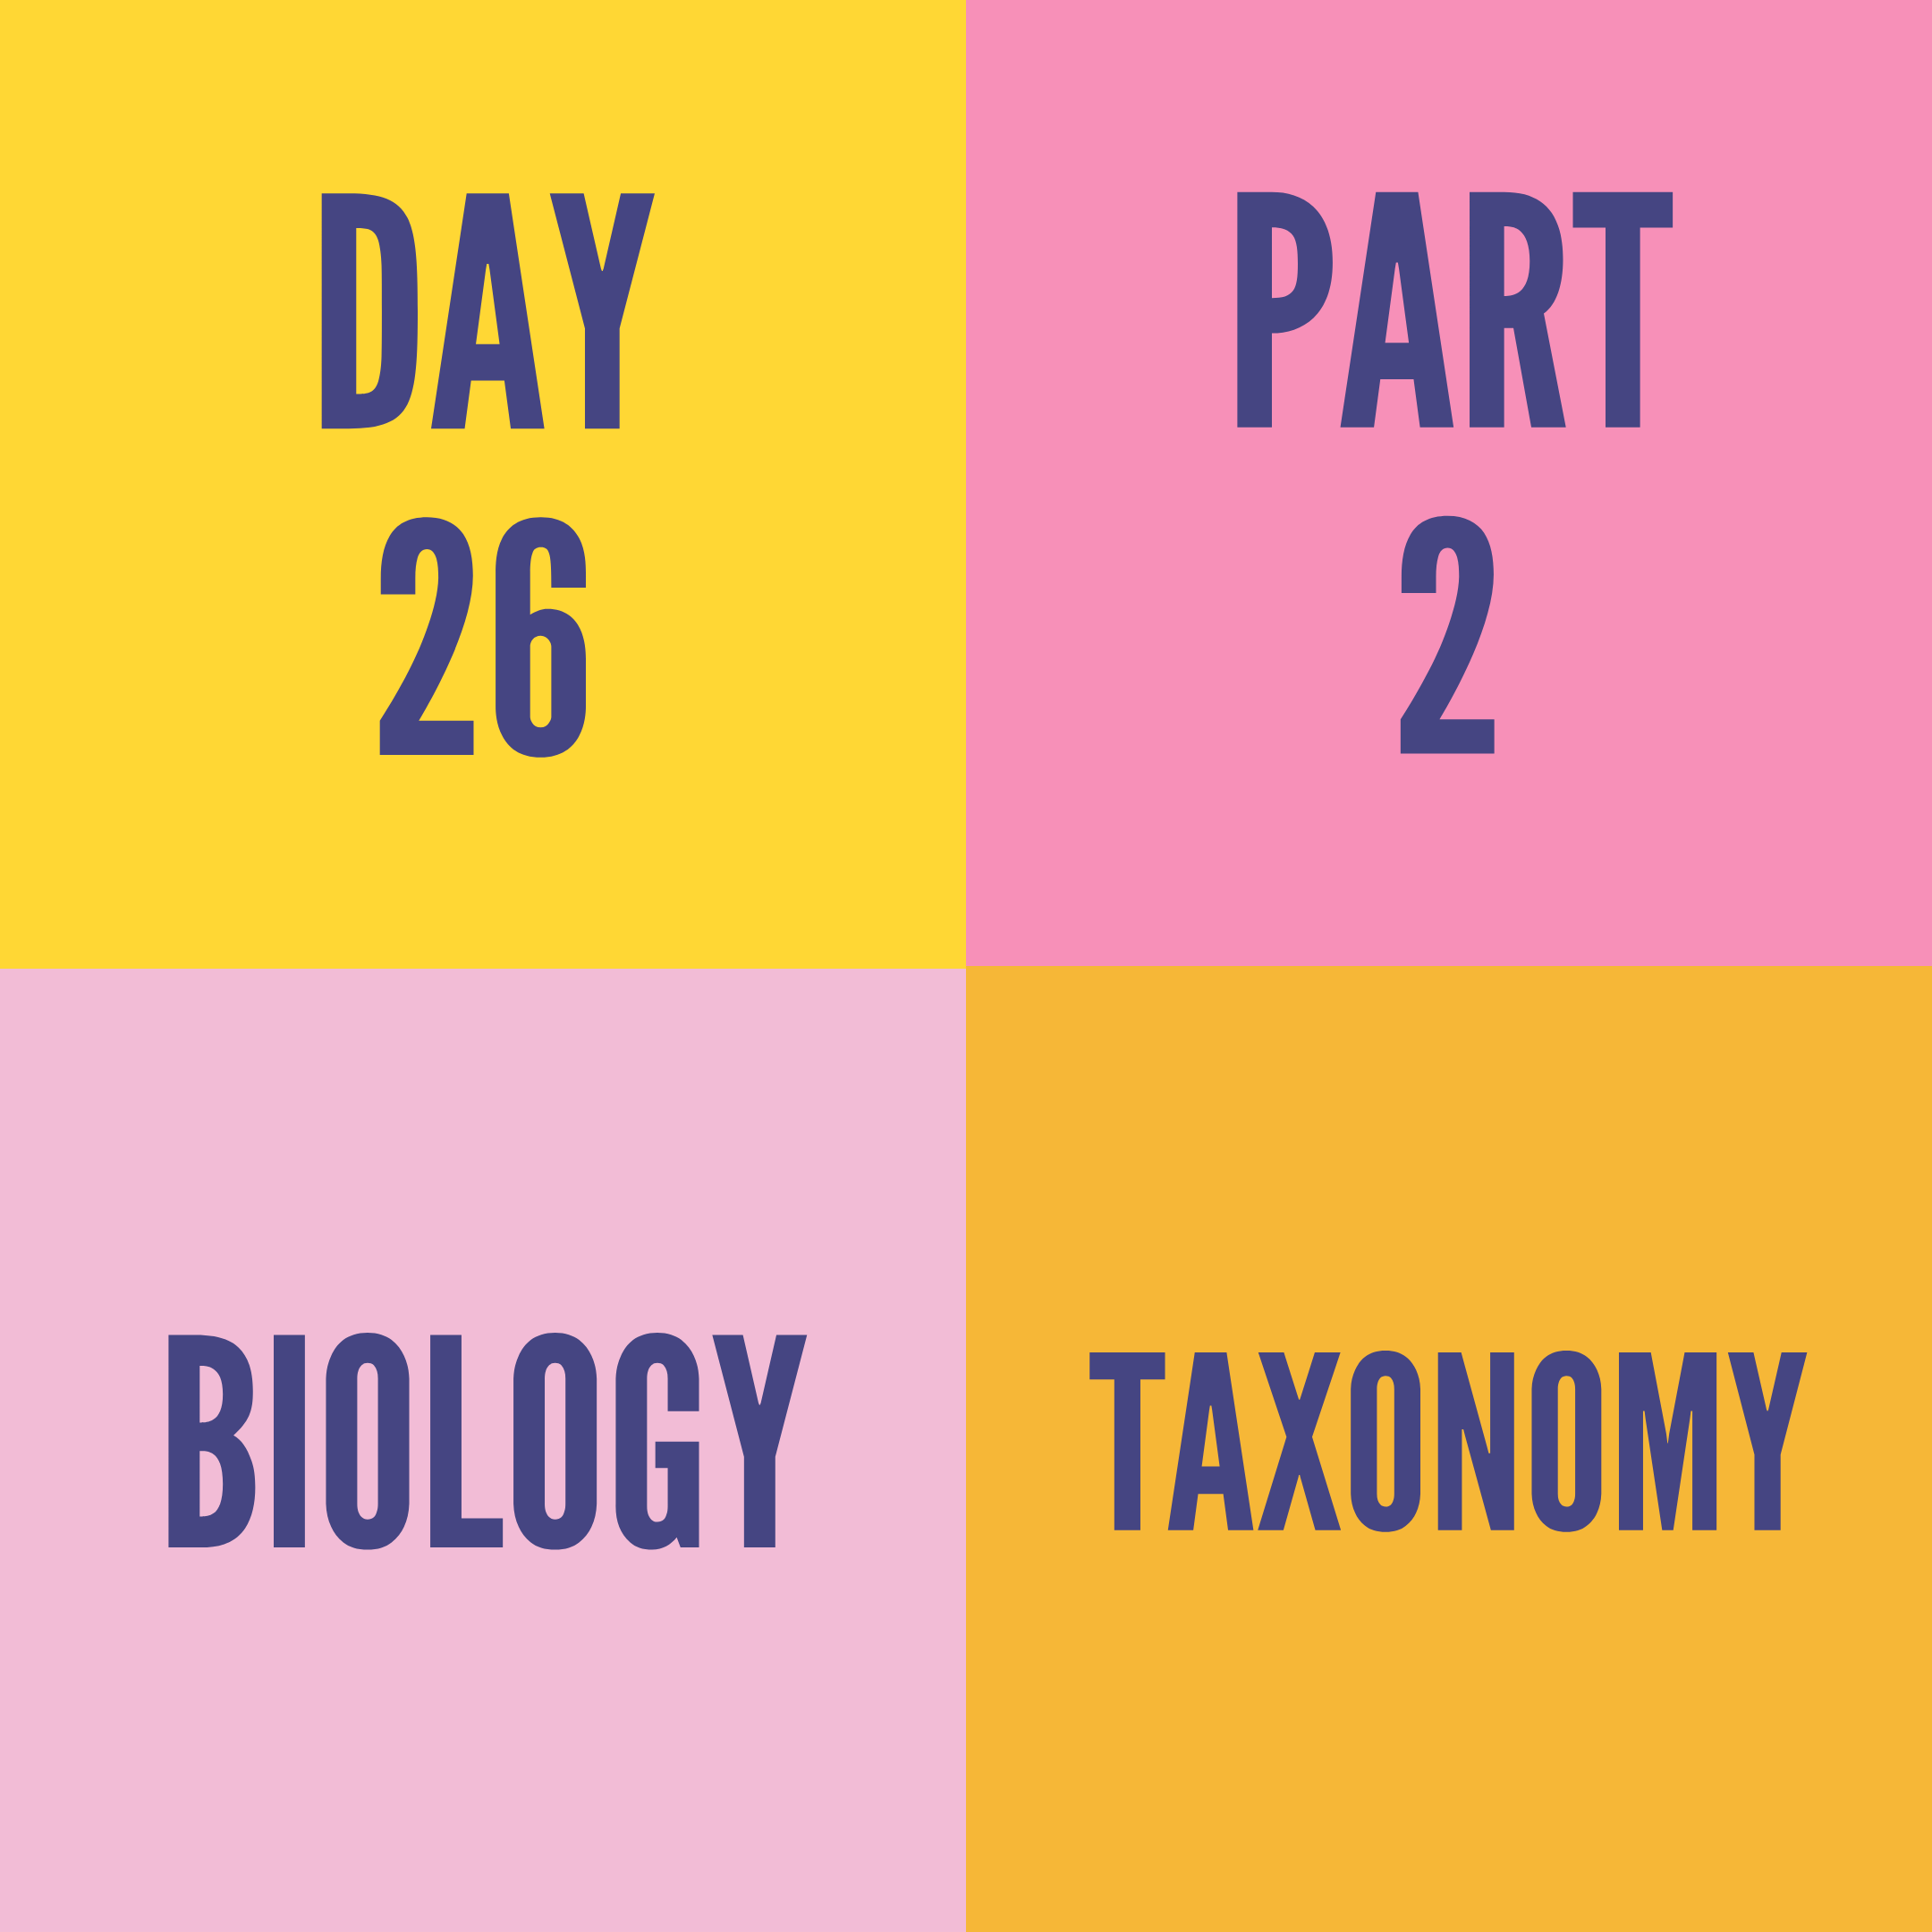 DAY-26 PART-2 TAXONOMY